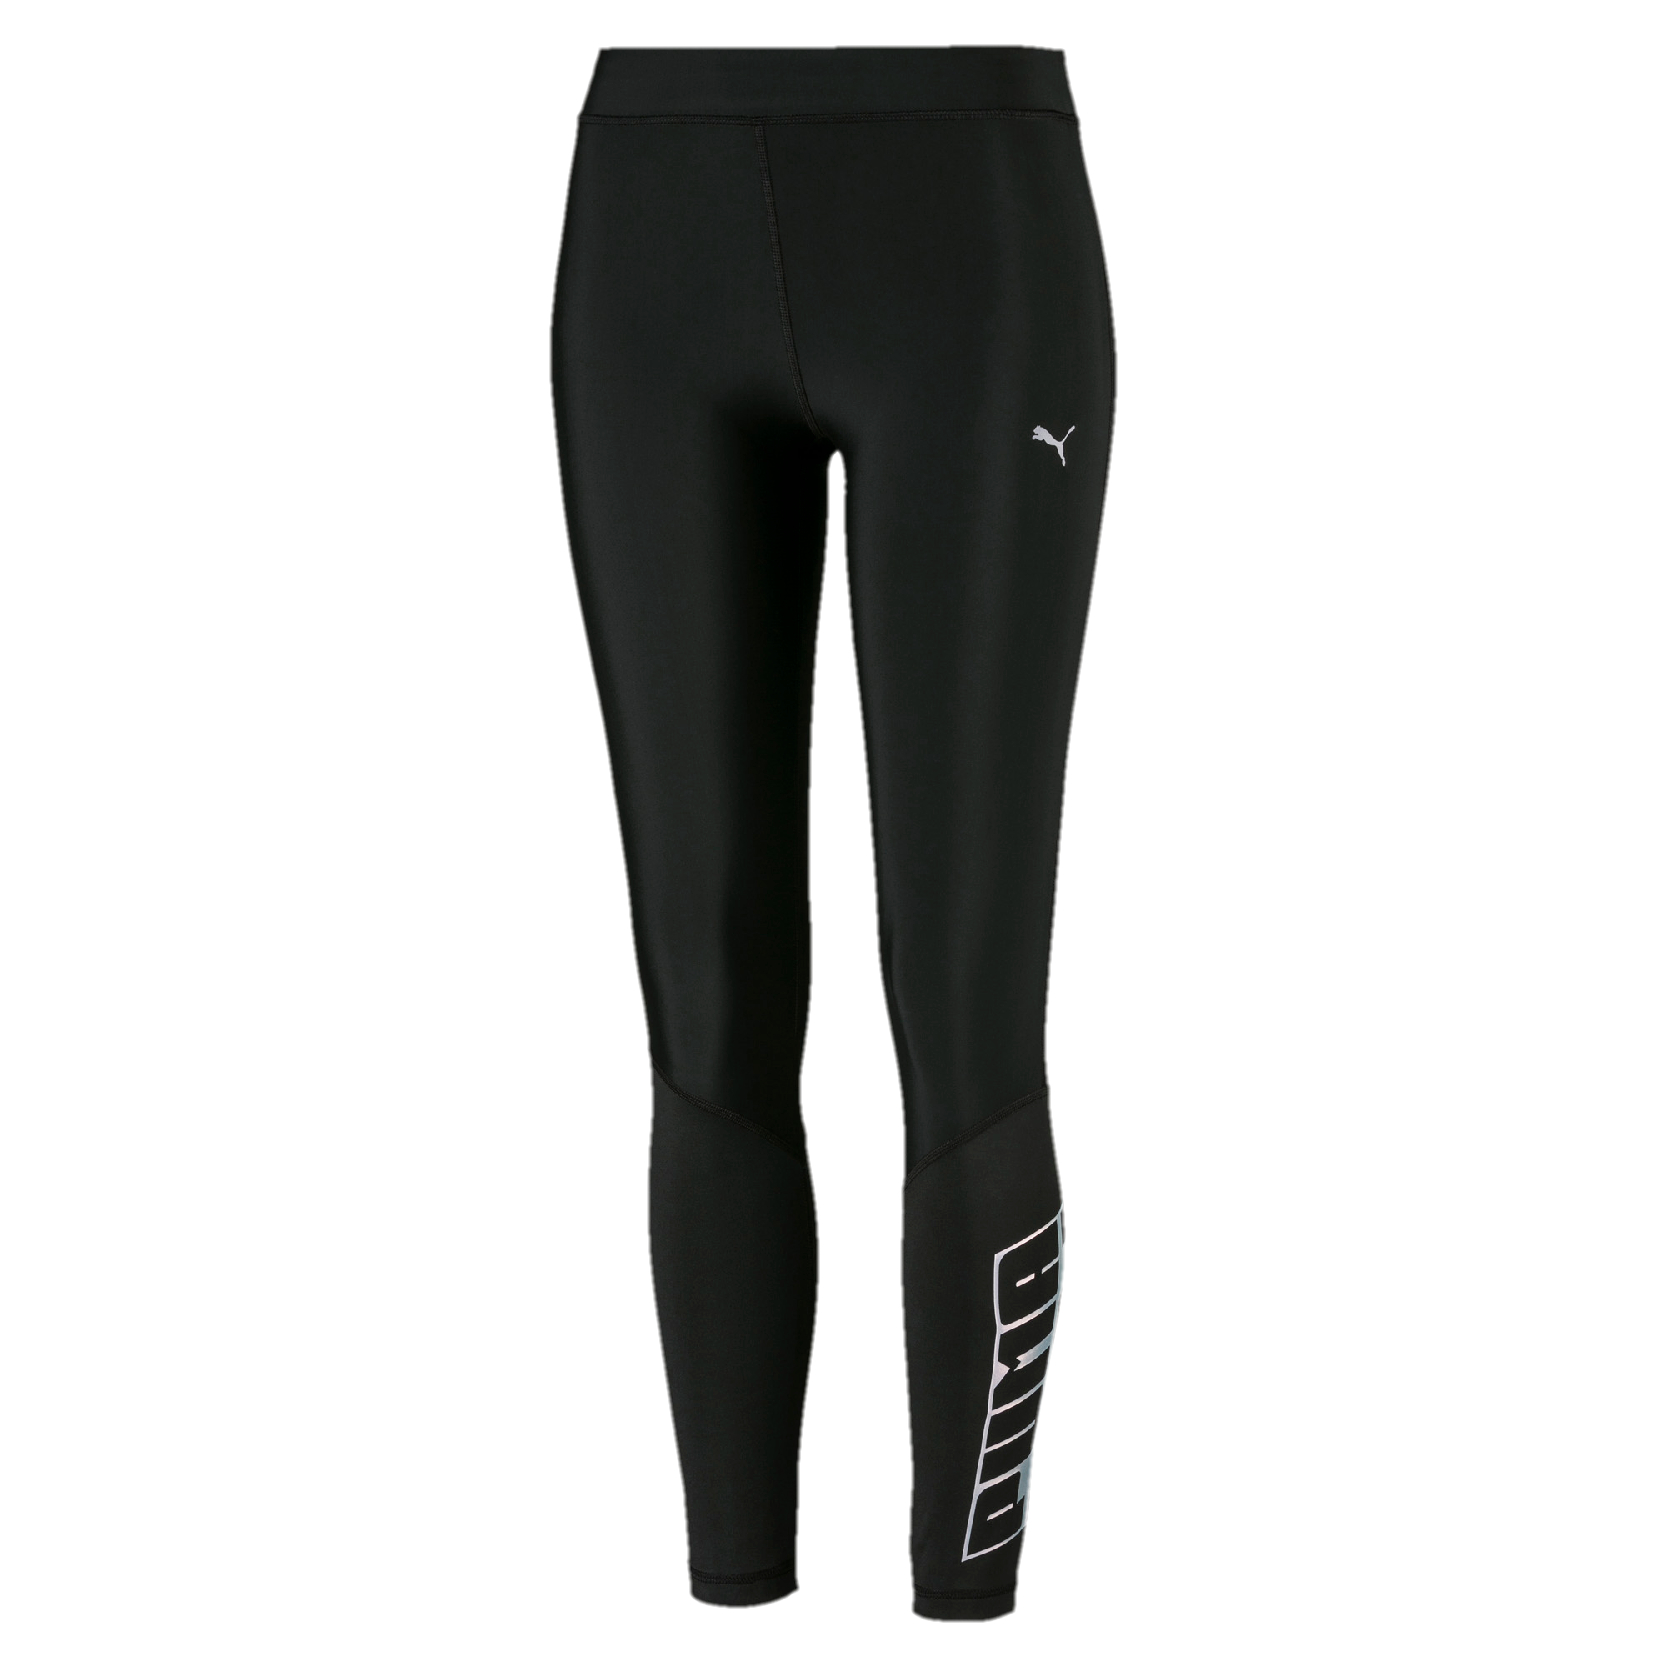 Puma Women's Aire 7/8 Tight | Trousers